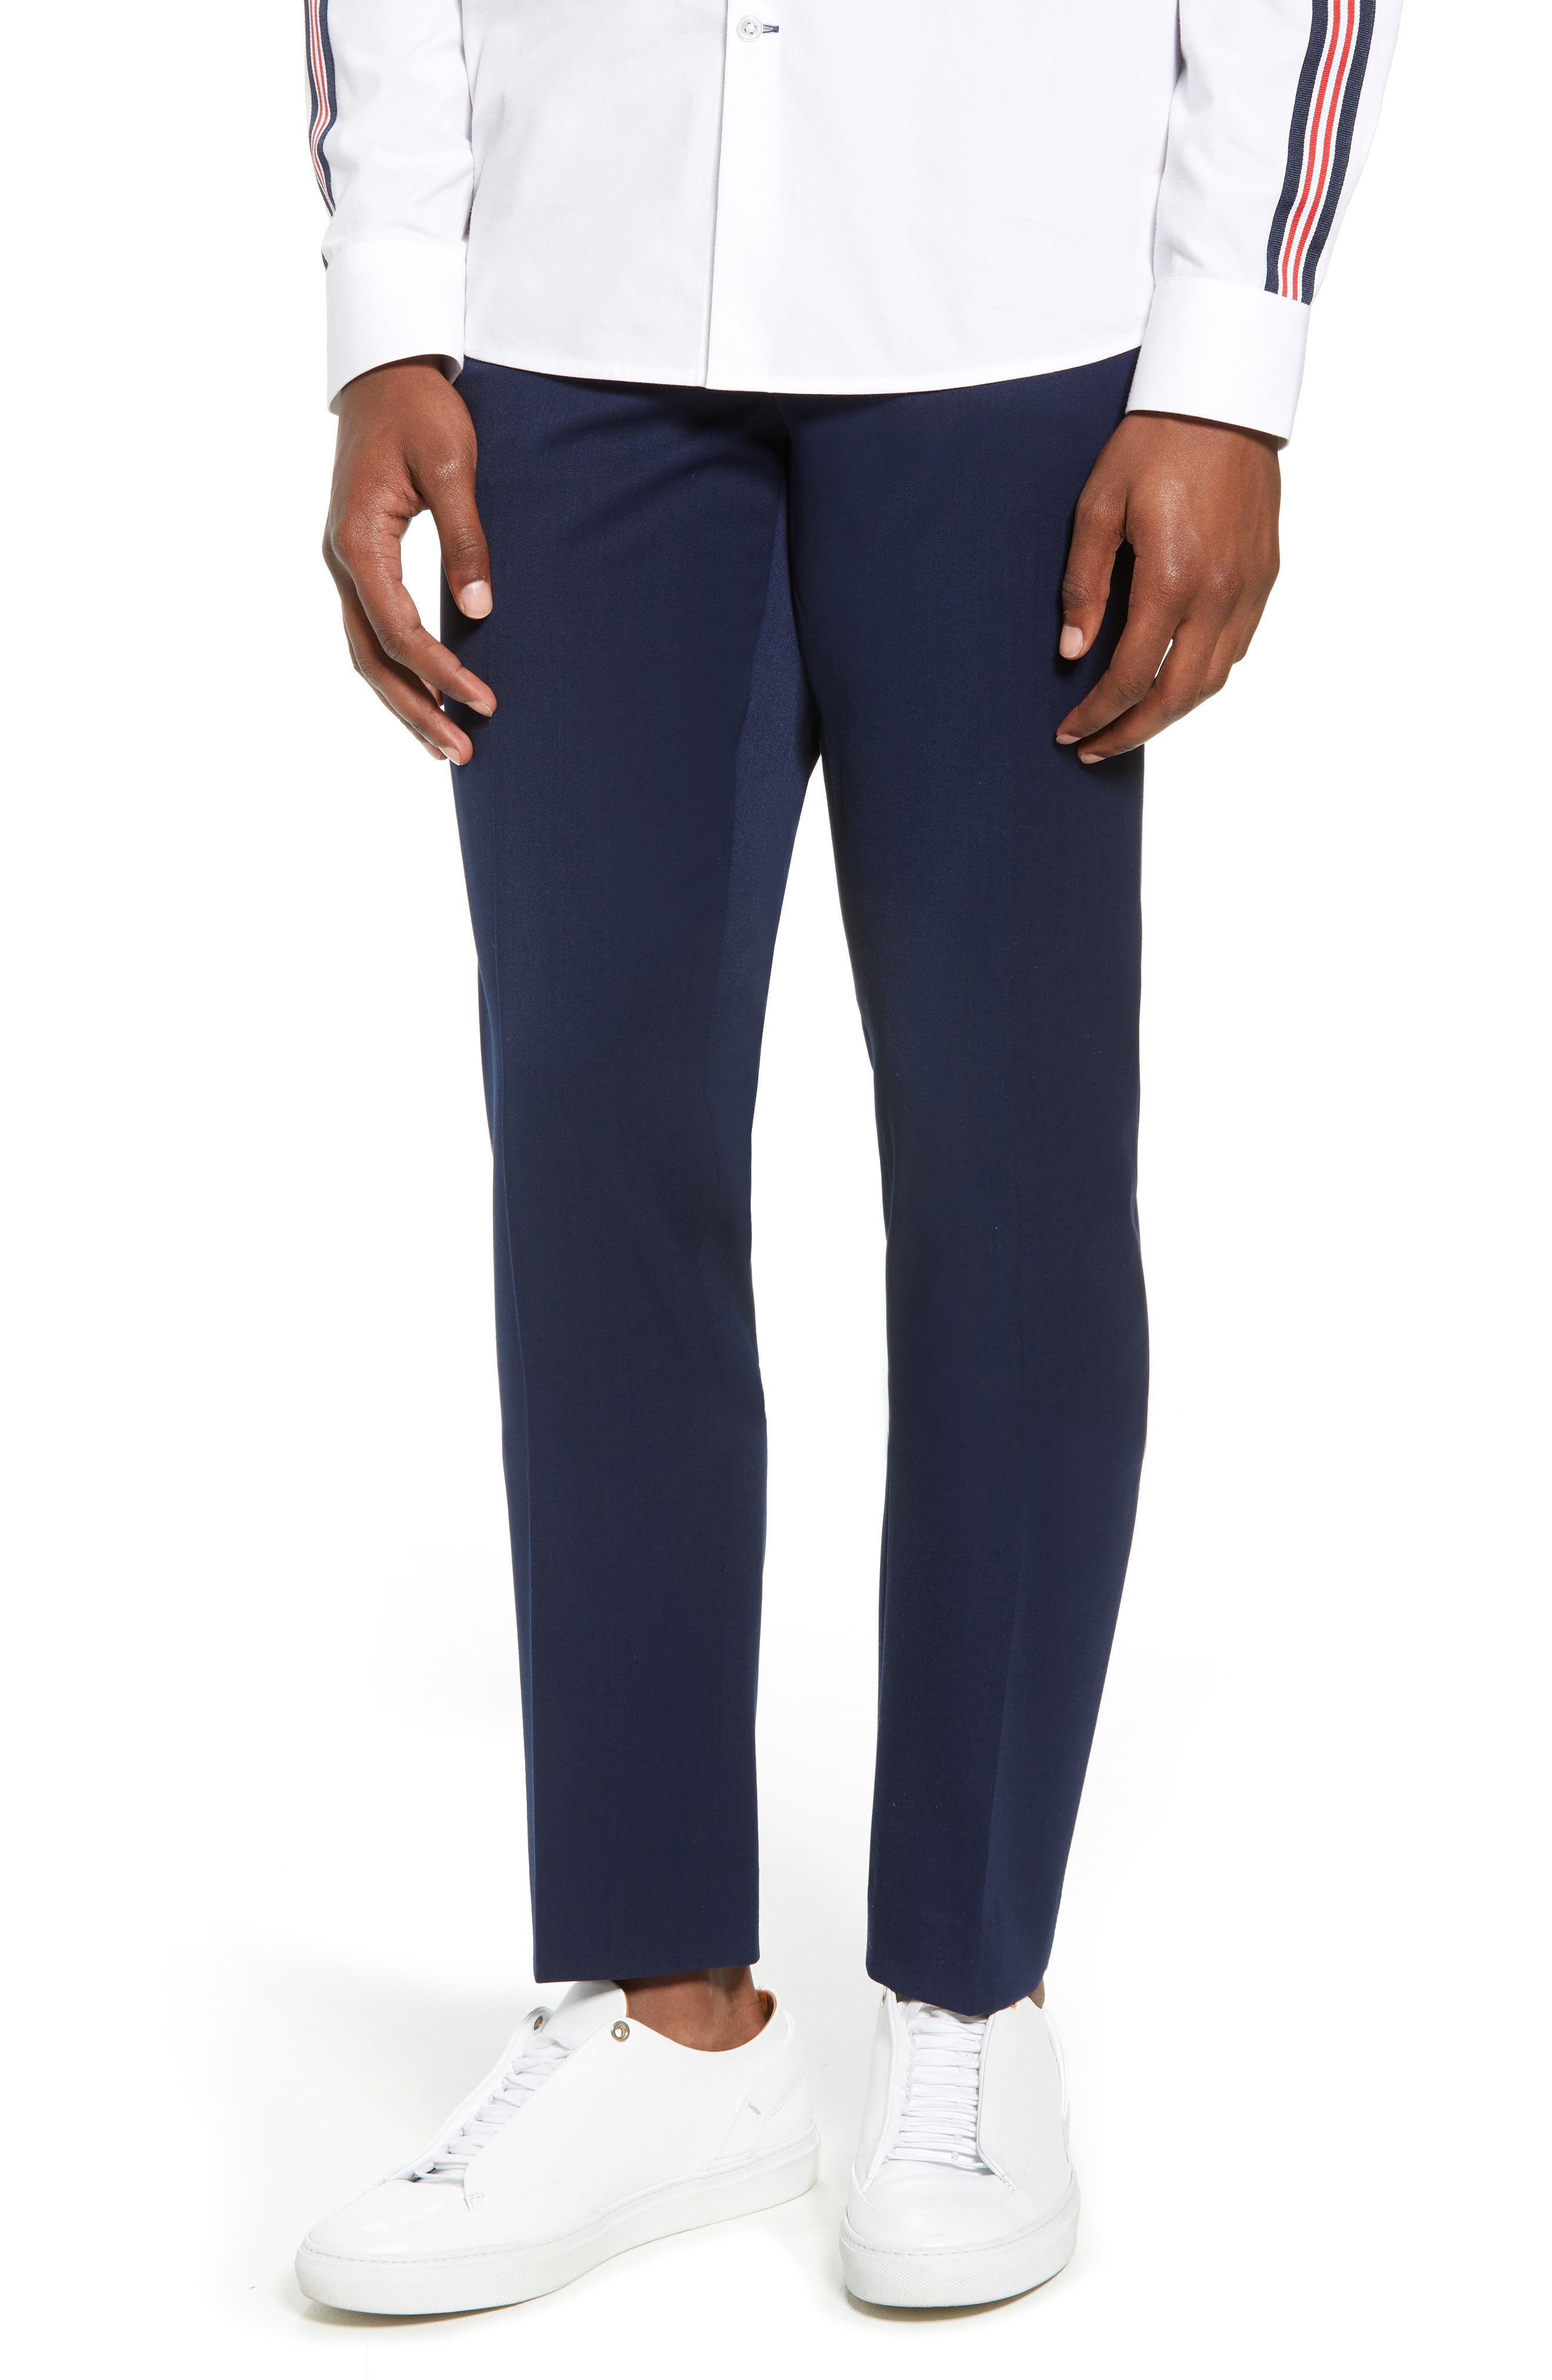 Muscle Fit Trousers,                         Main,                         color, NAVY BLUE